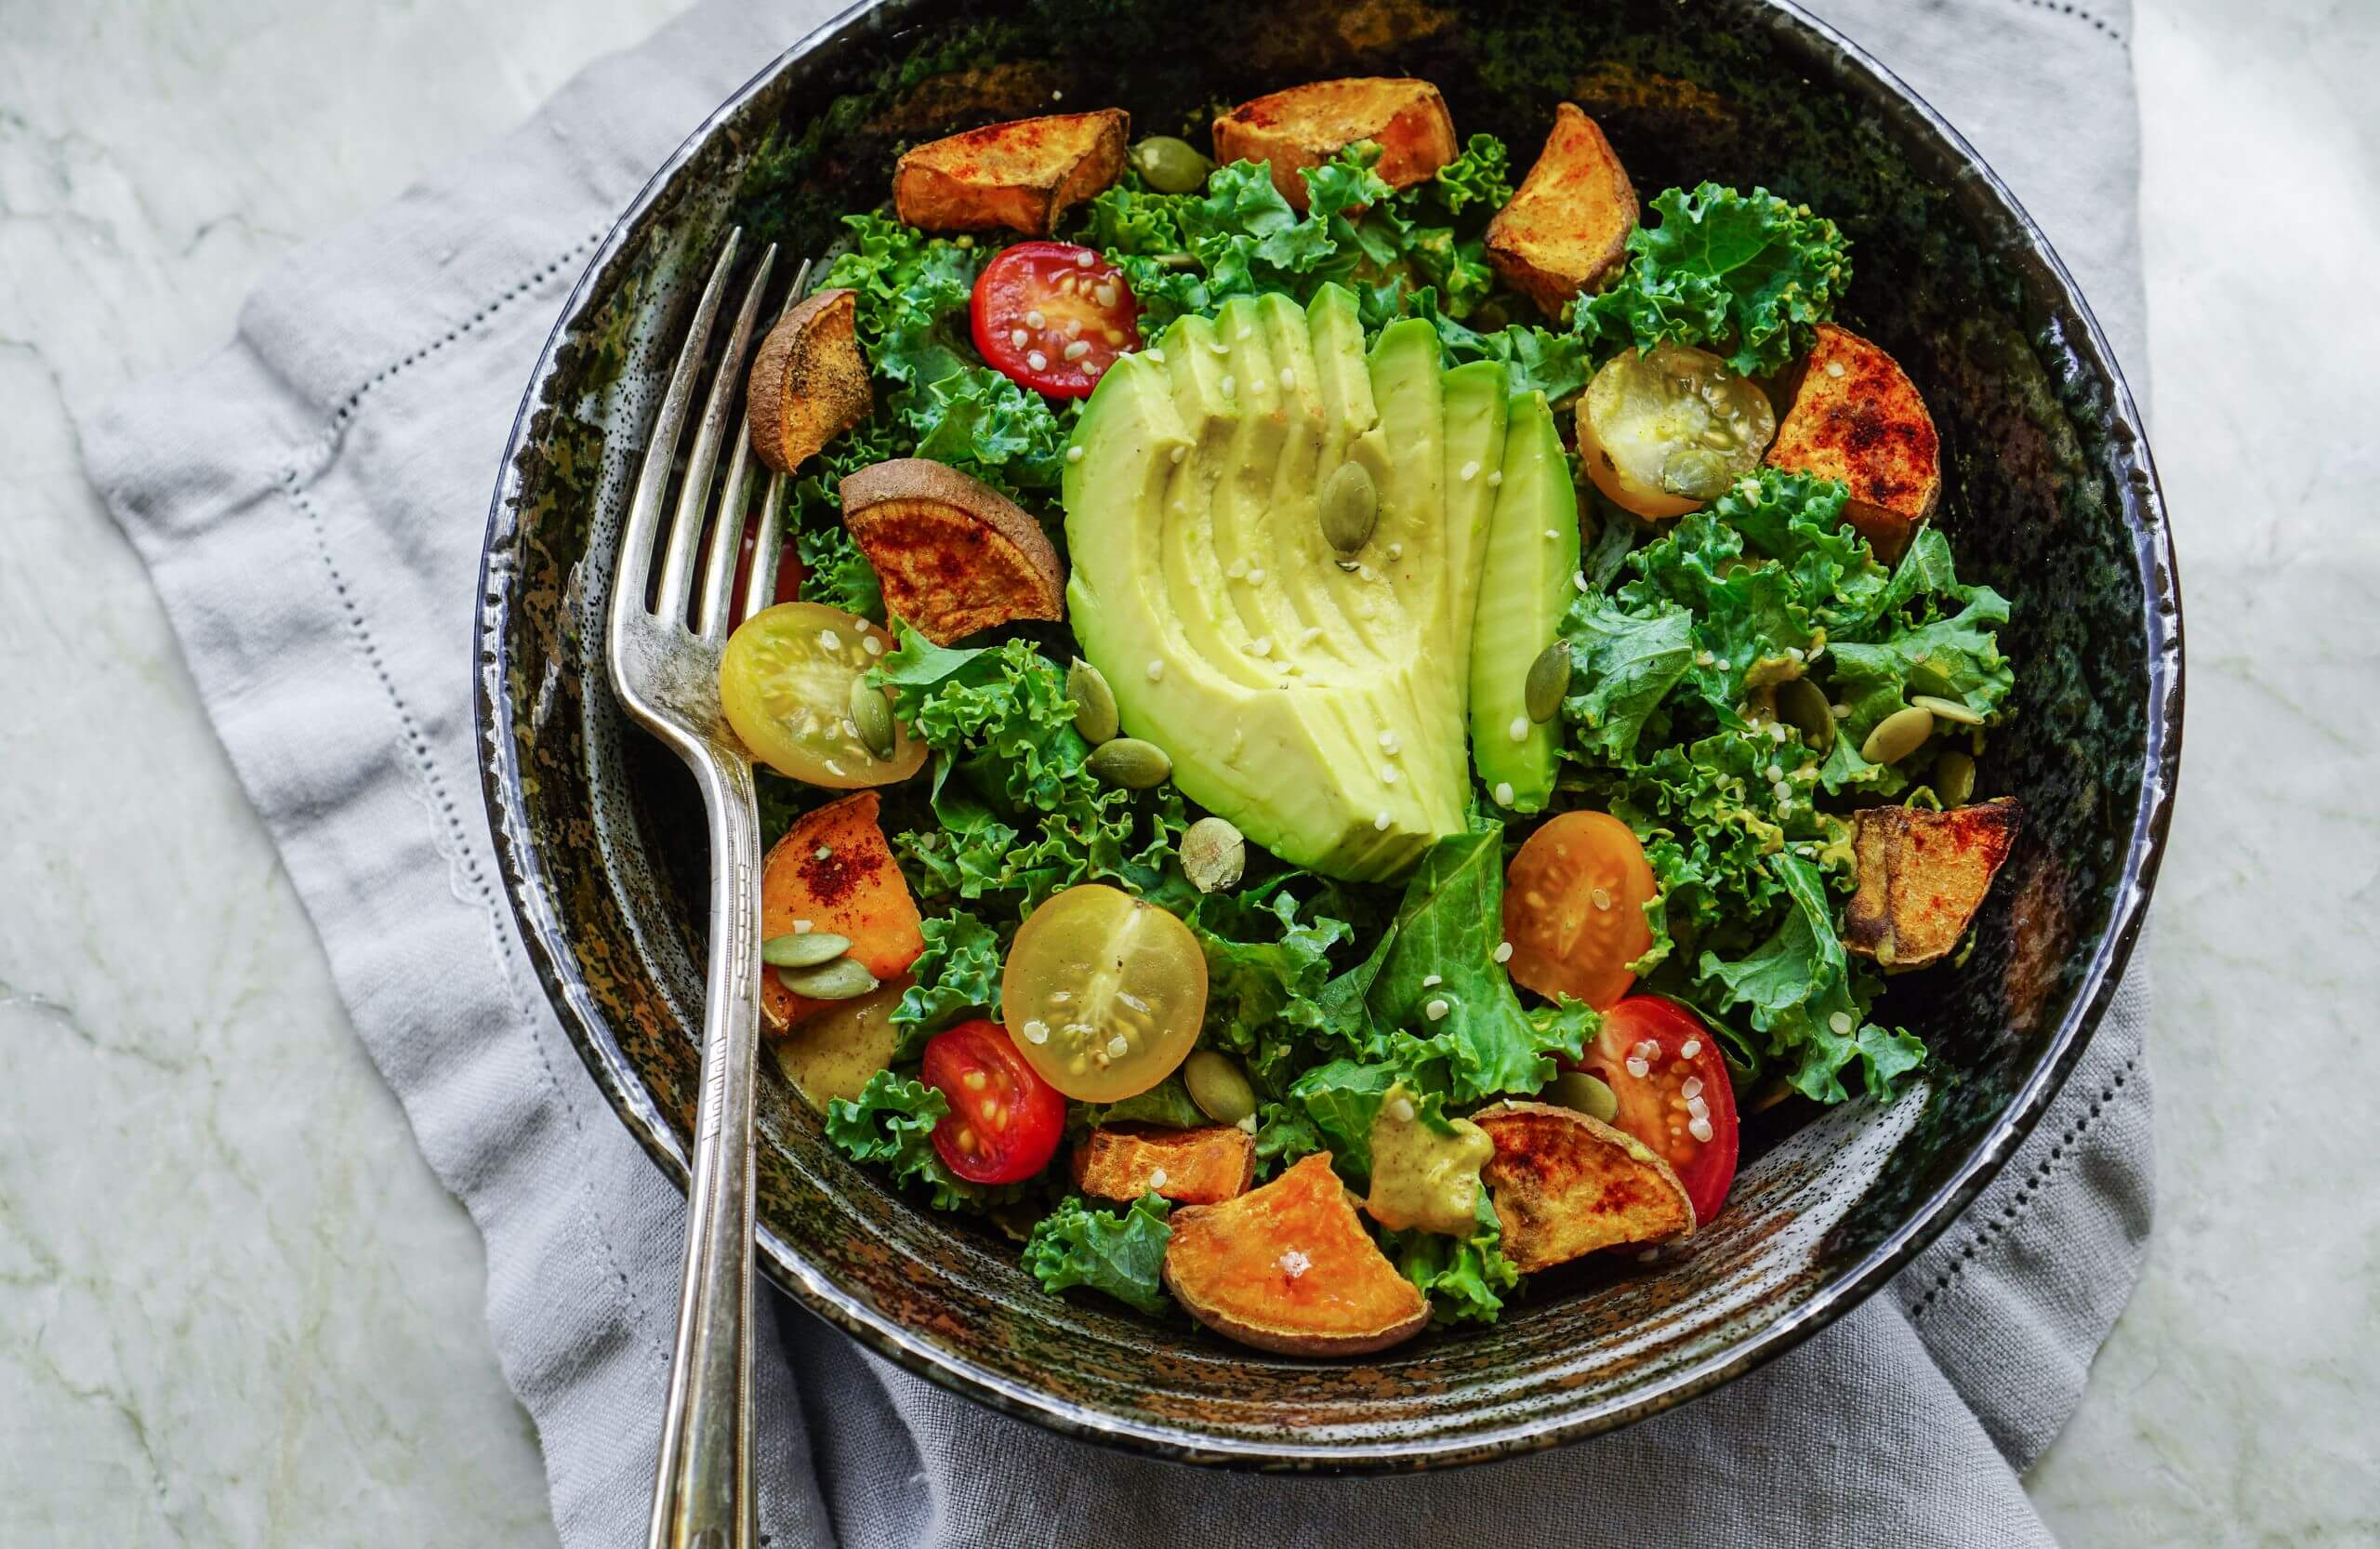 Kale, fried yams and avocado salad on a stone background